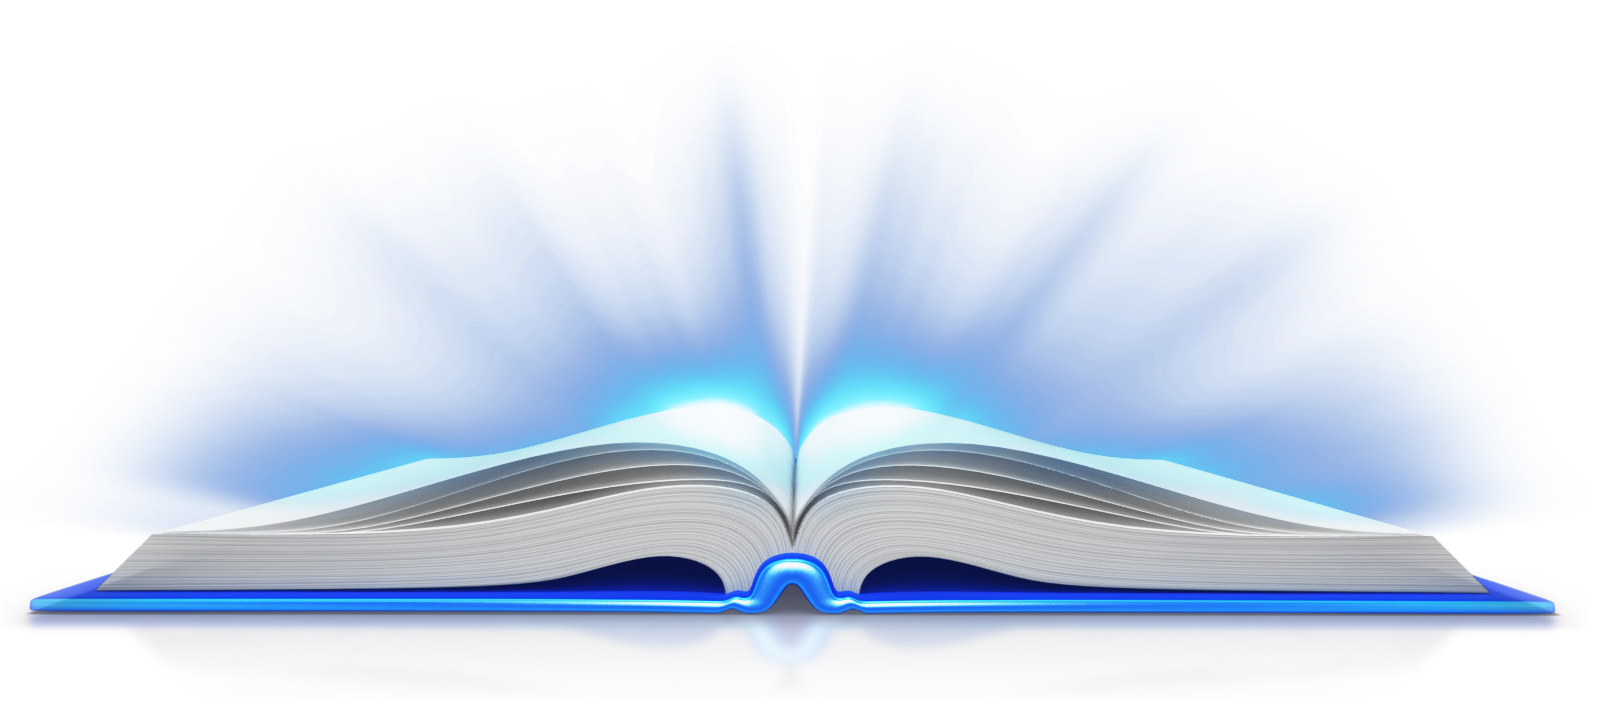 book_PNG51041.png